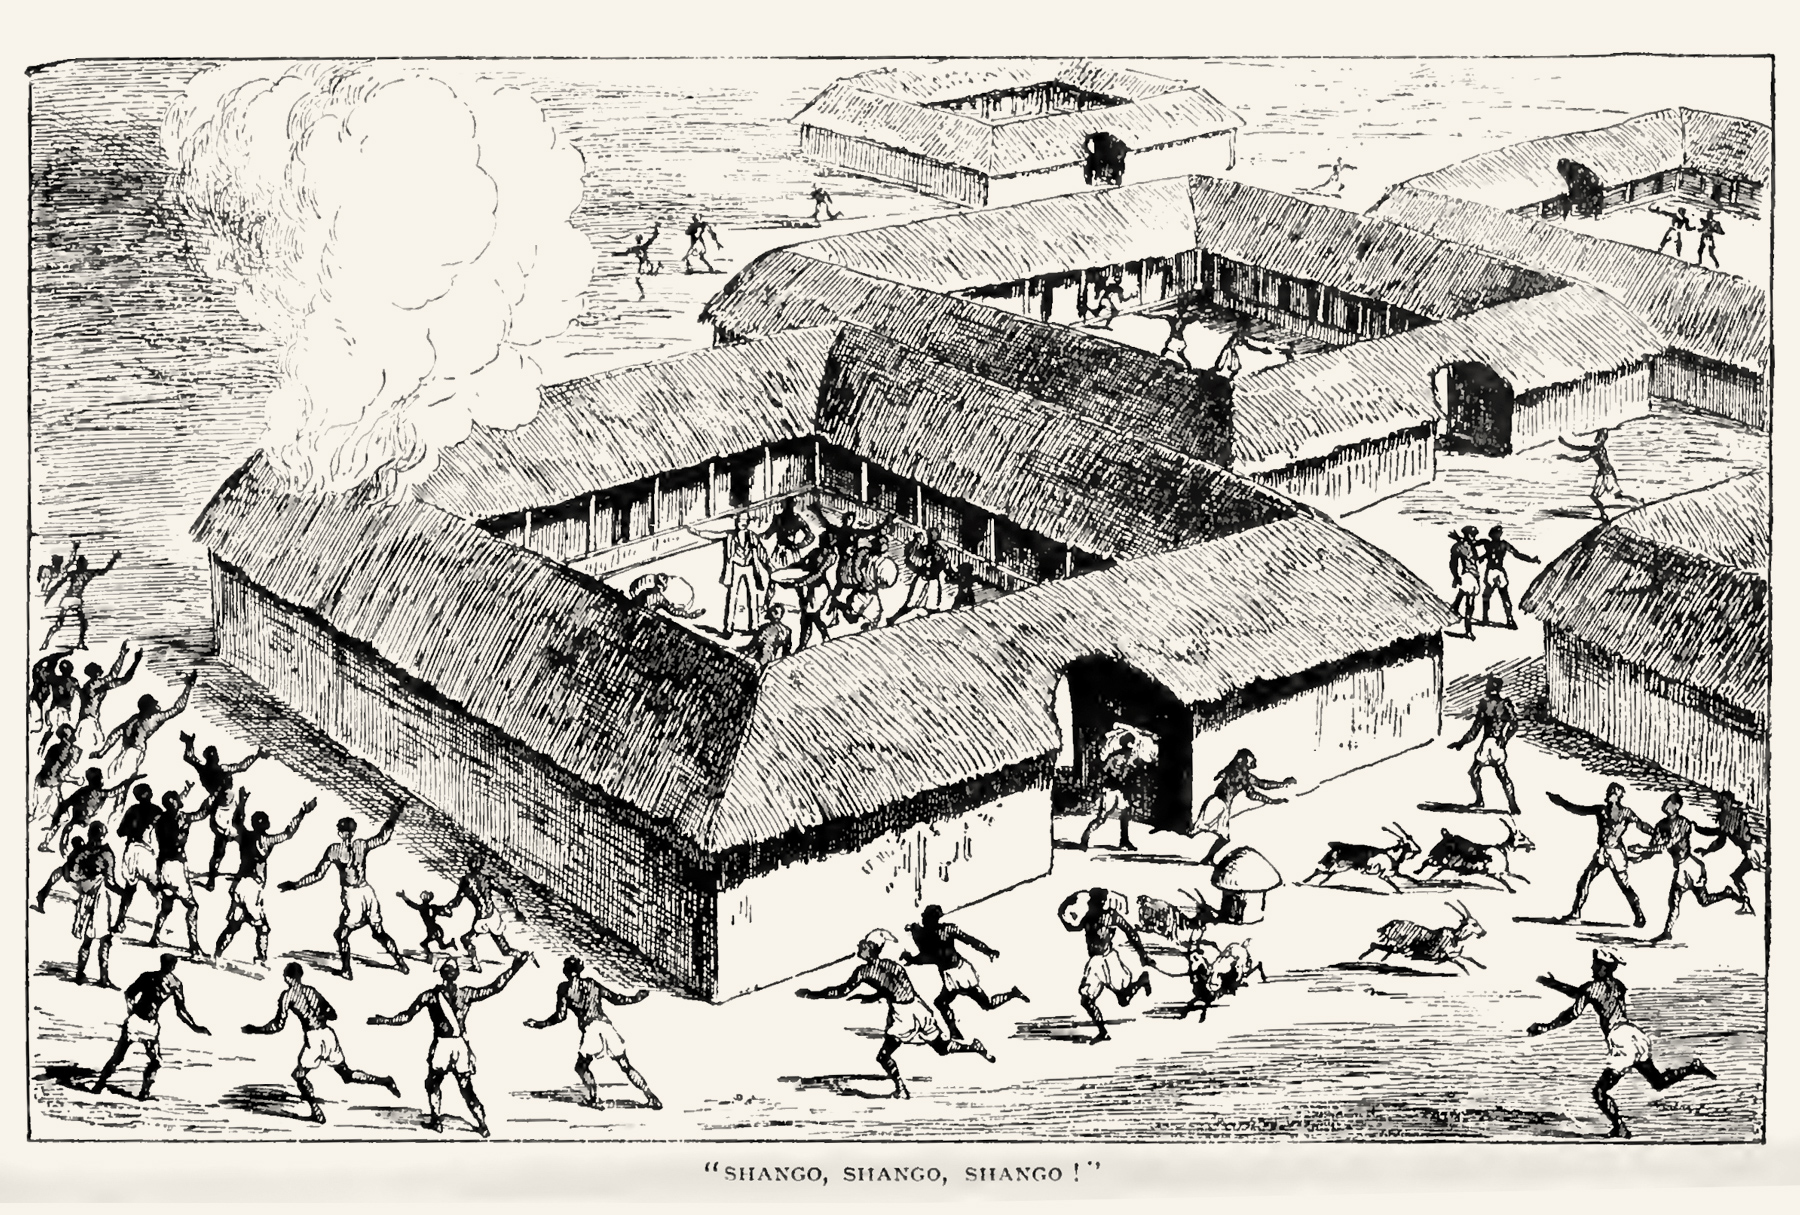 """An image showing the outbreak of fire, the subtitle says people are screaming """"Shango!"""" In the middle of the compound there could be the missionary, pointing at the fire, he remains calm,explaining something in the midst of the turbulence."""